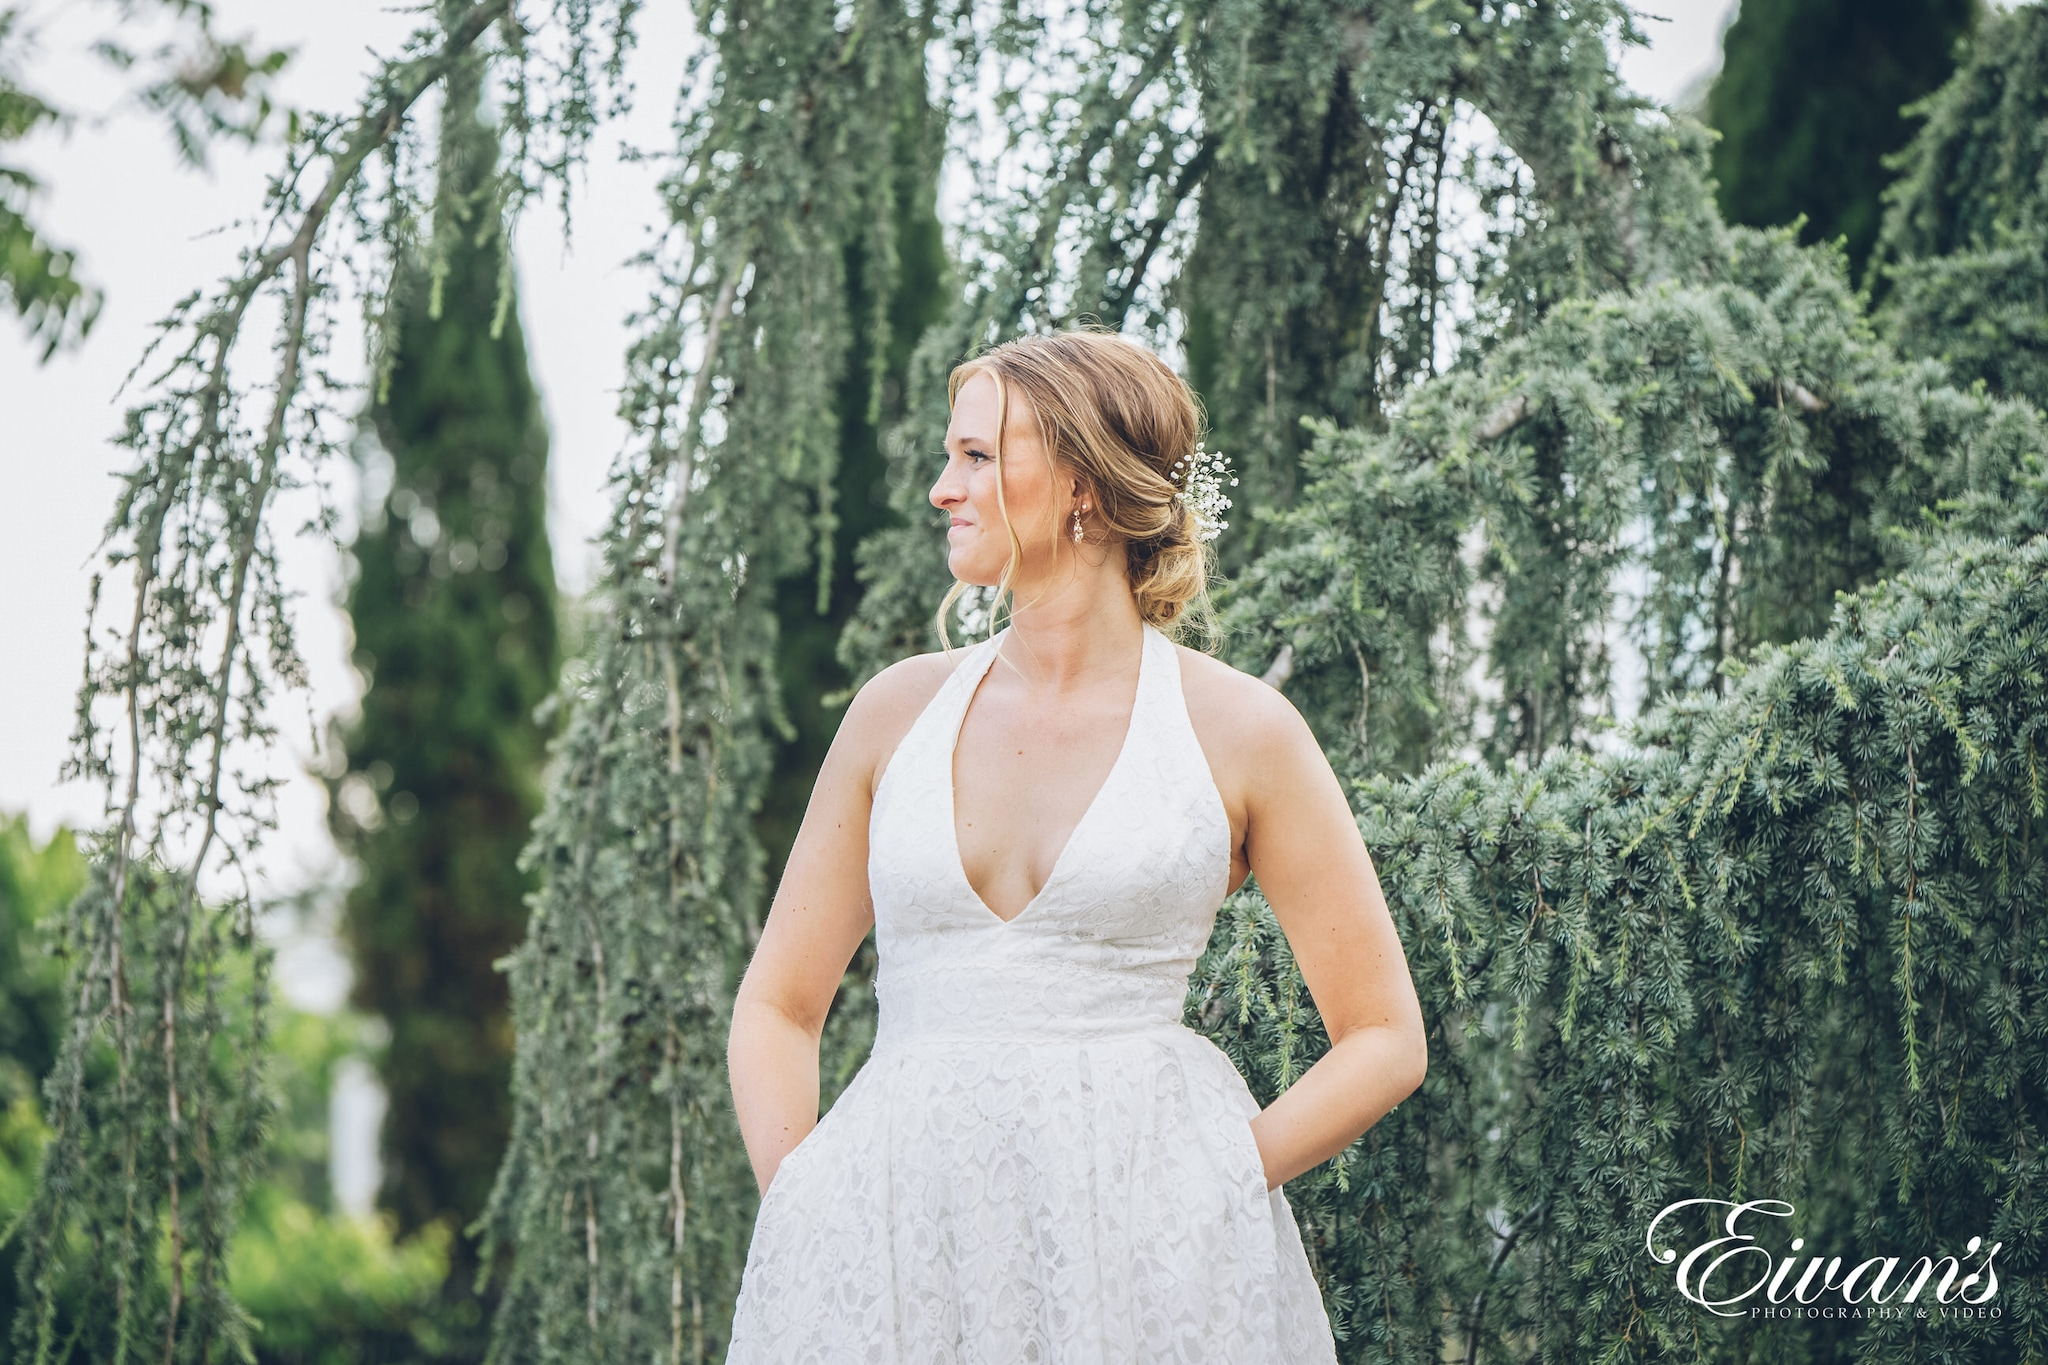 bride wearing a white dress posed in front of trees